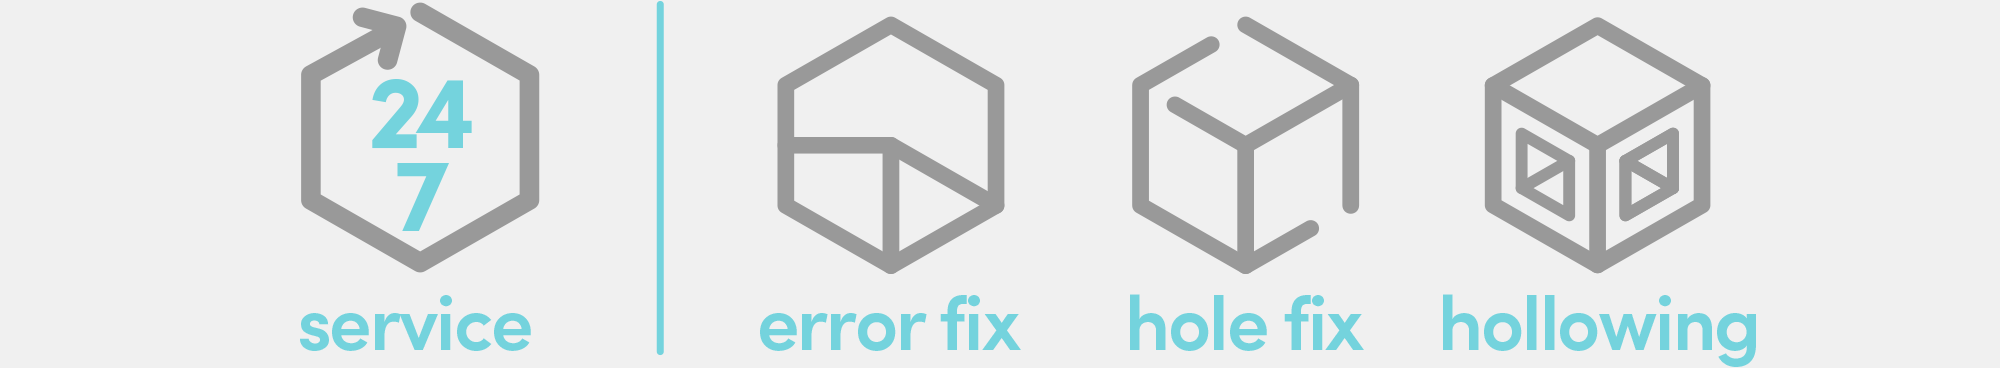 services_file_fix_icons_new.png